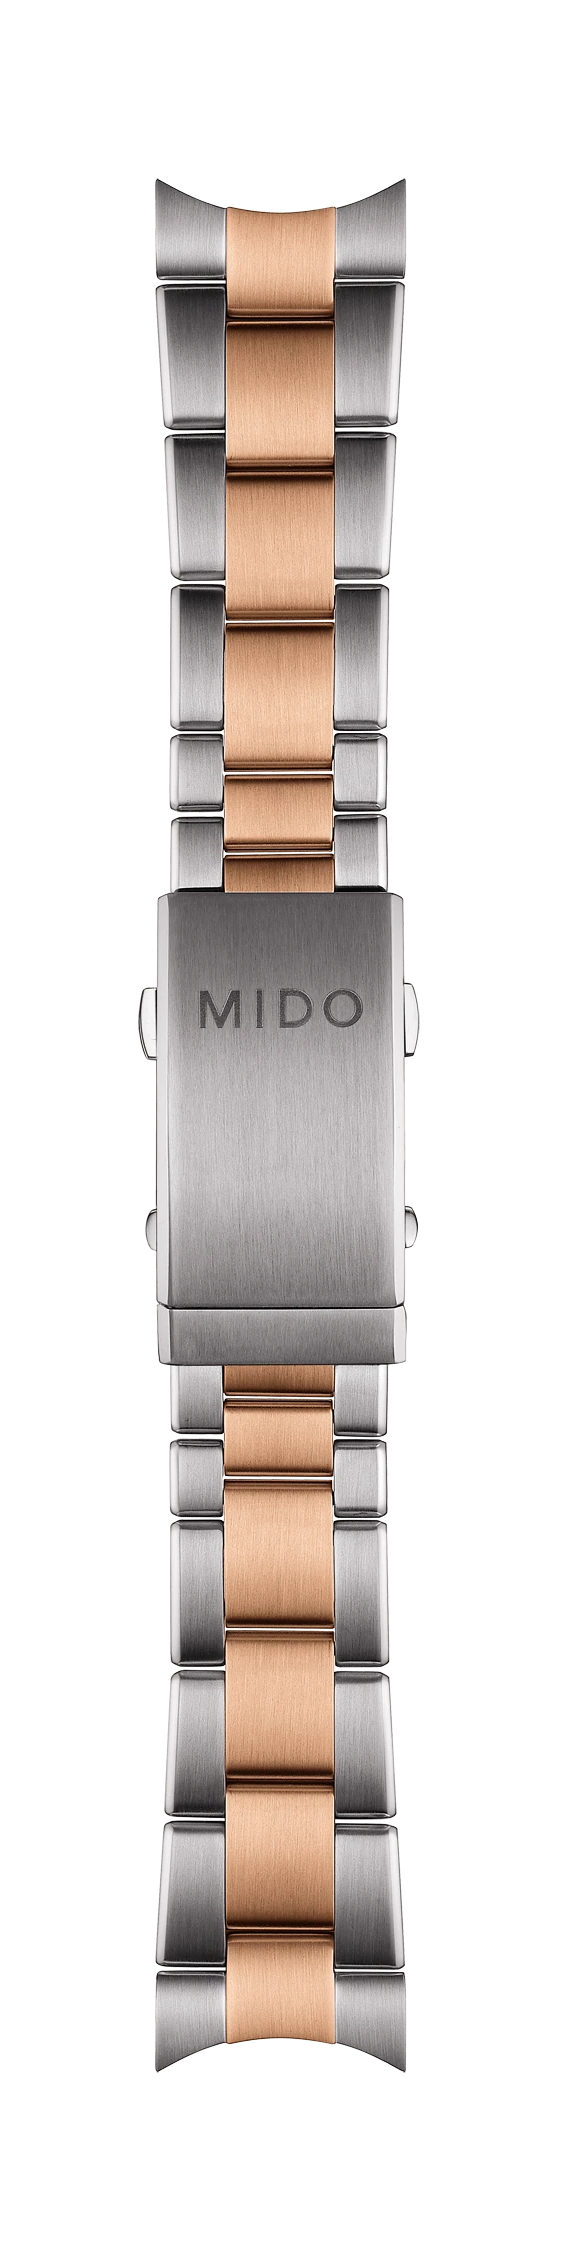 MIDO Ocean Star M026430A Rose-Gold Silver Steel Watch Band